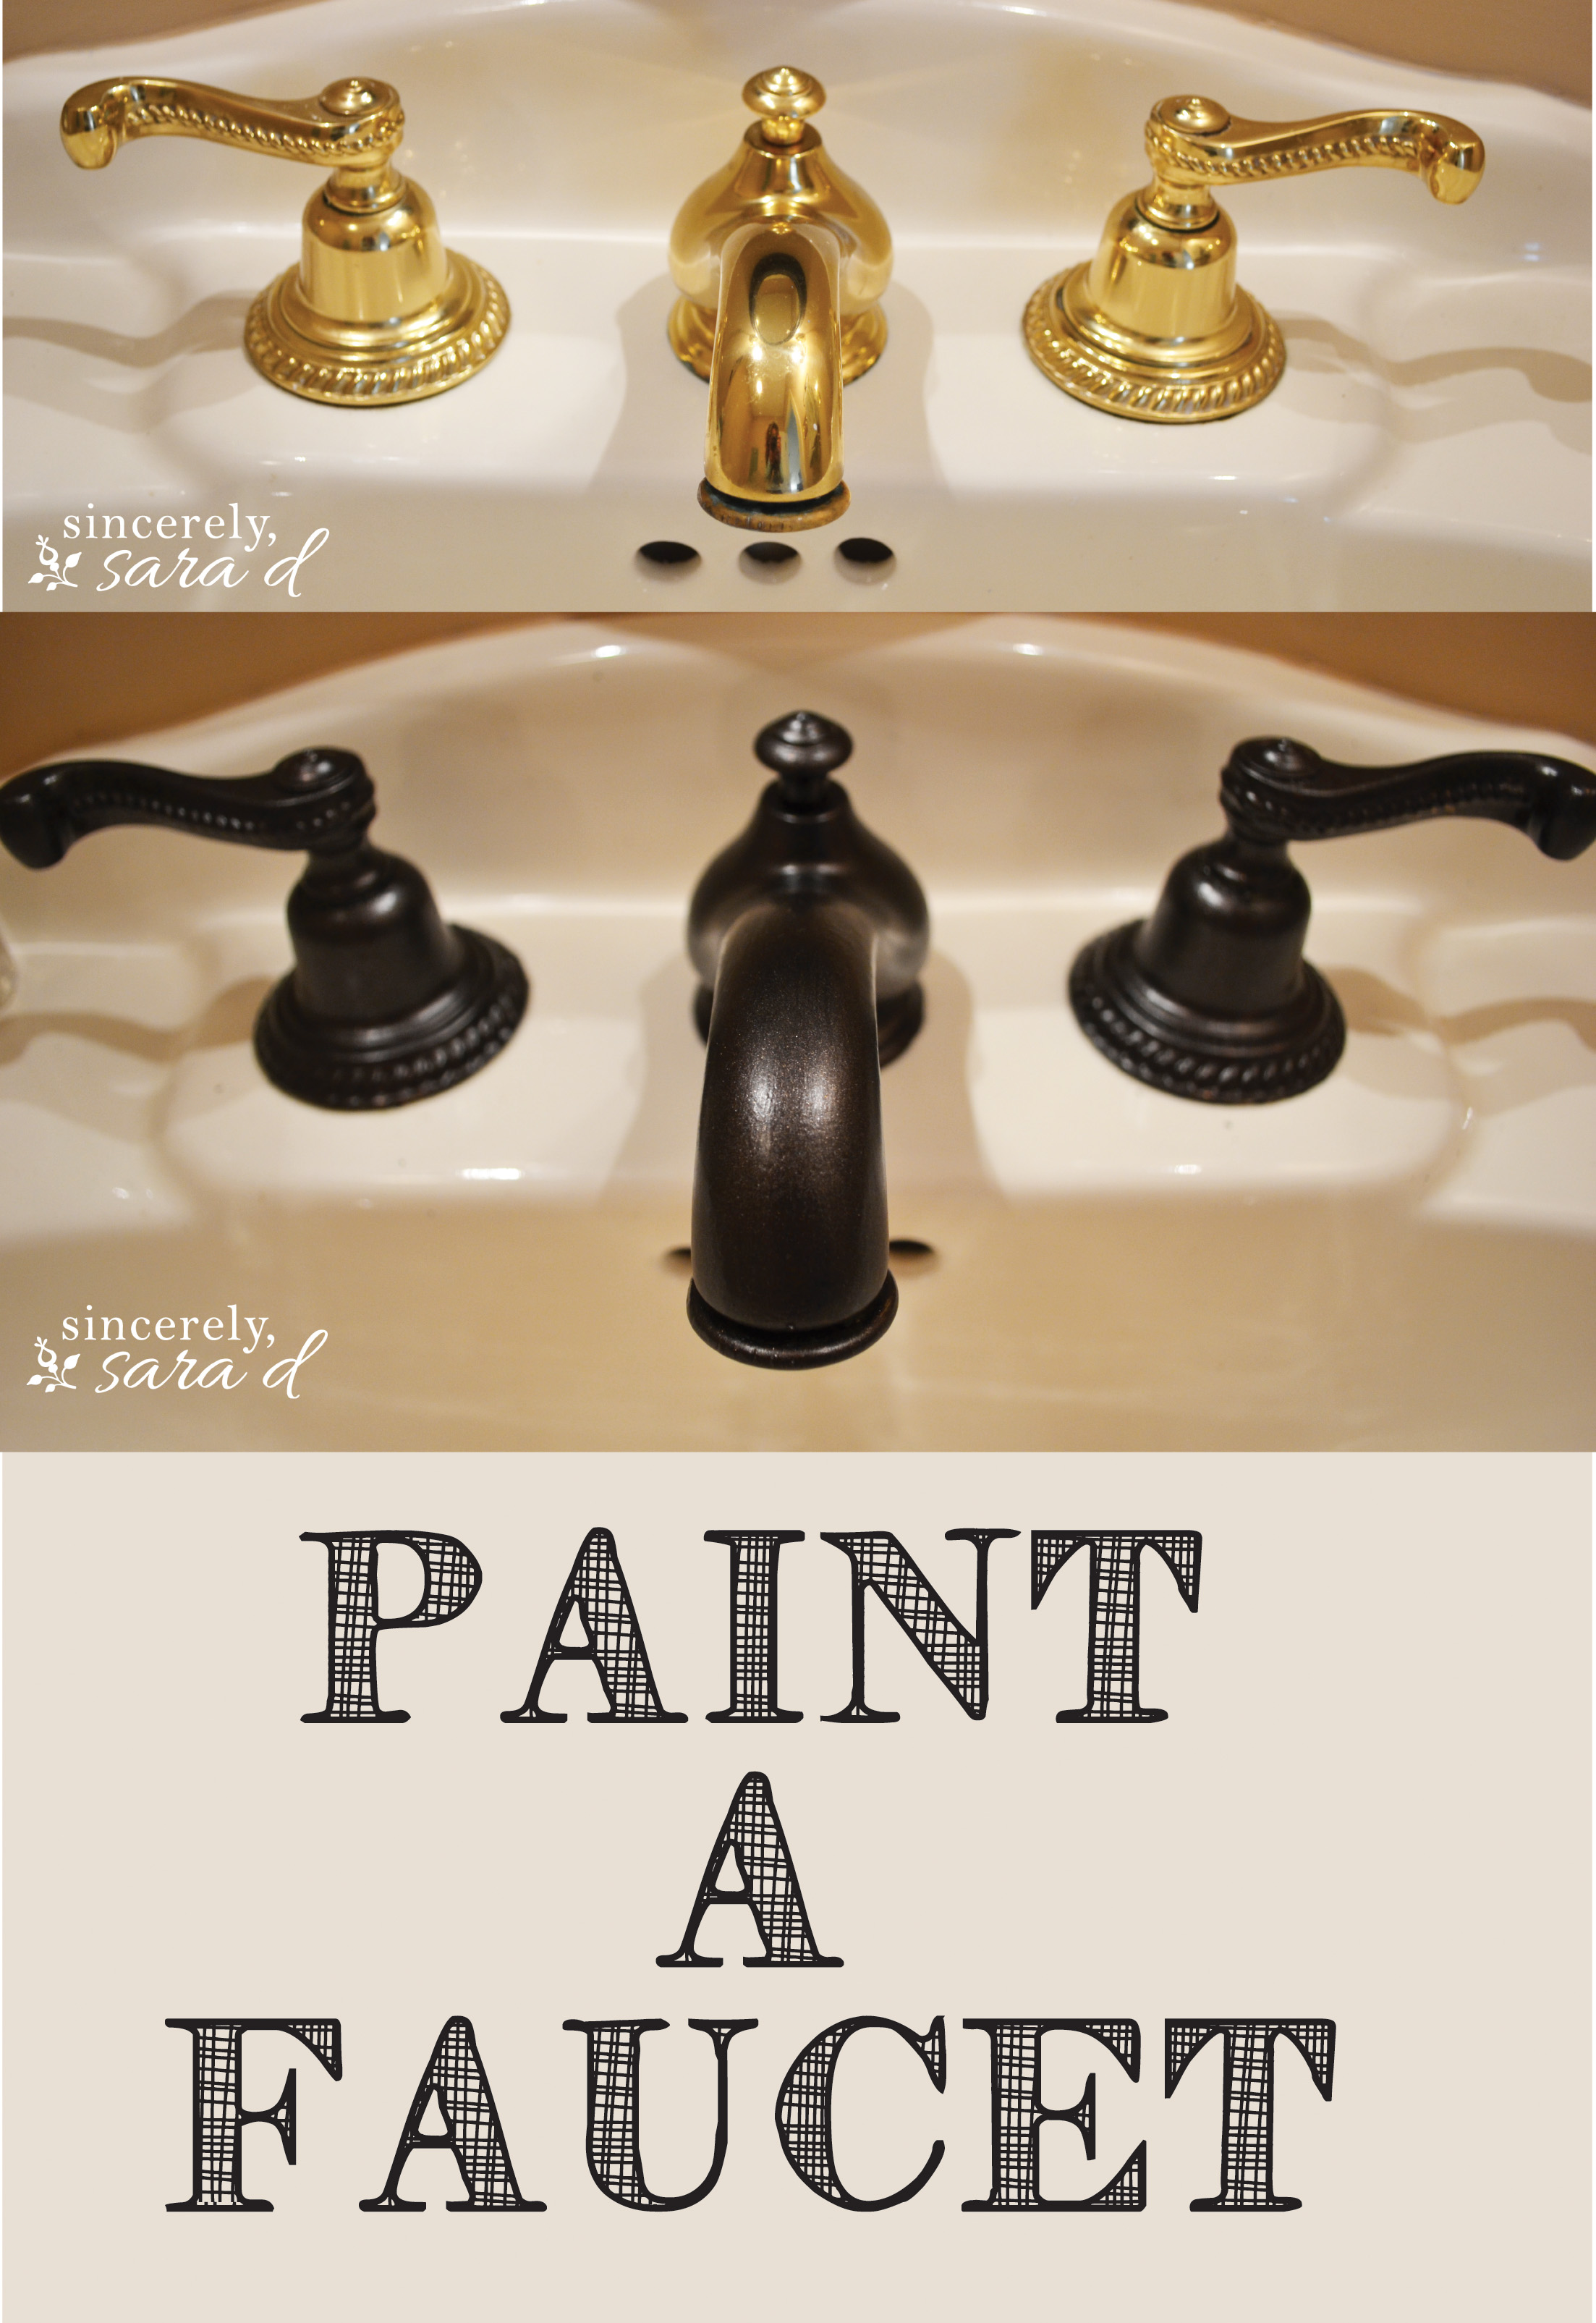 The 90 S Brass Unfortunately We Didn T Have Budget To Replace Faucets So I Decided It Was Worth A Try Paint Them